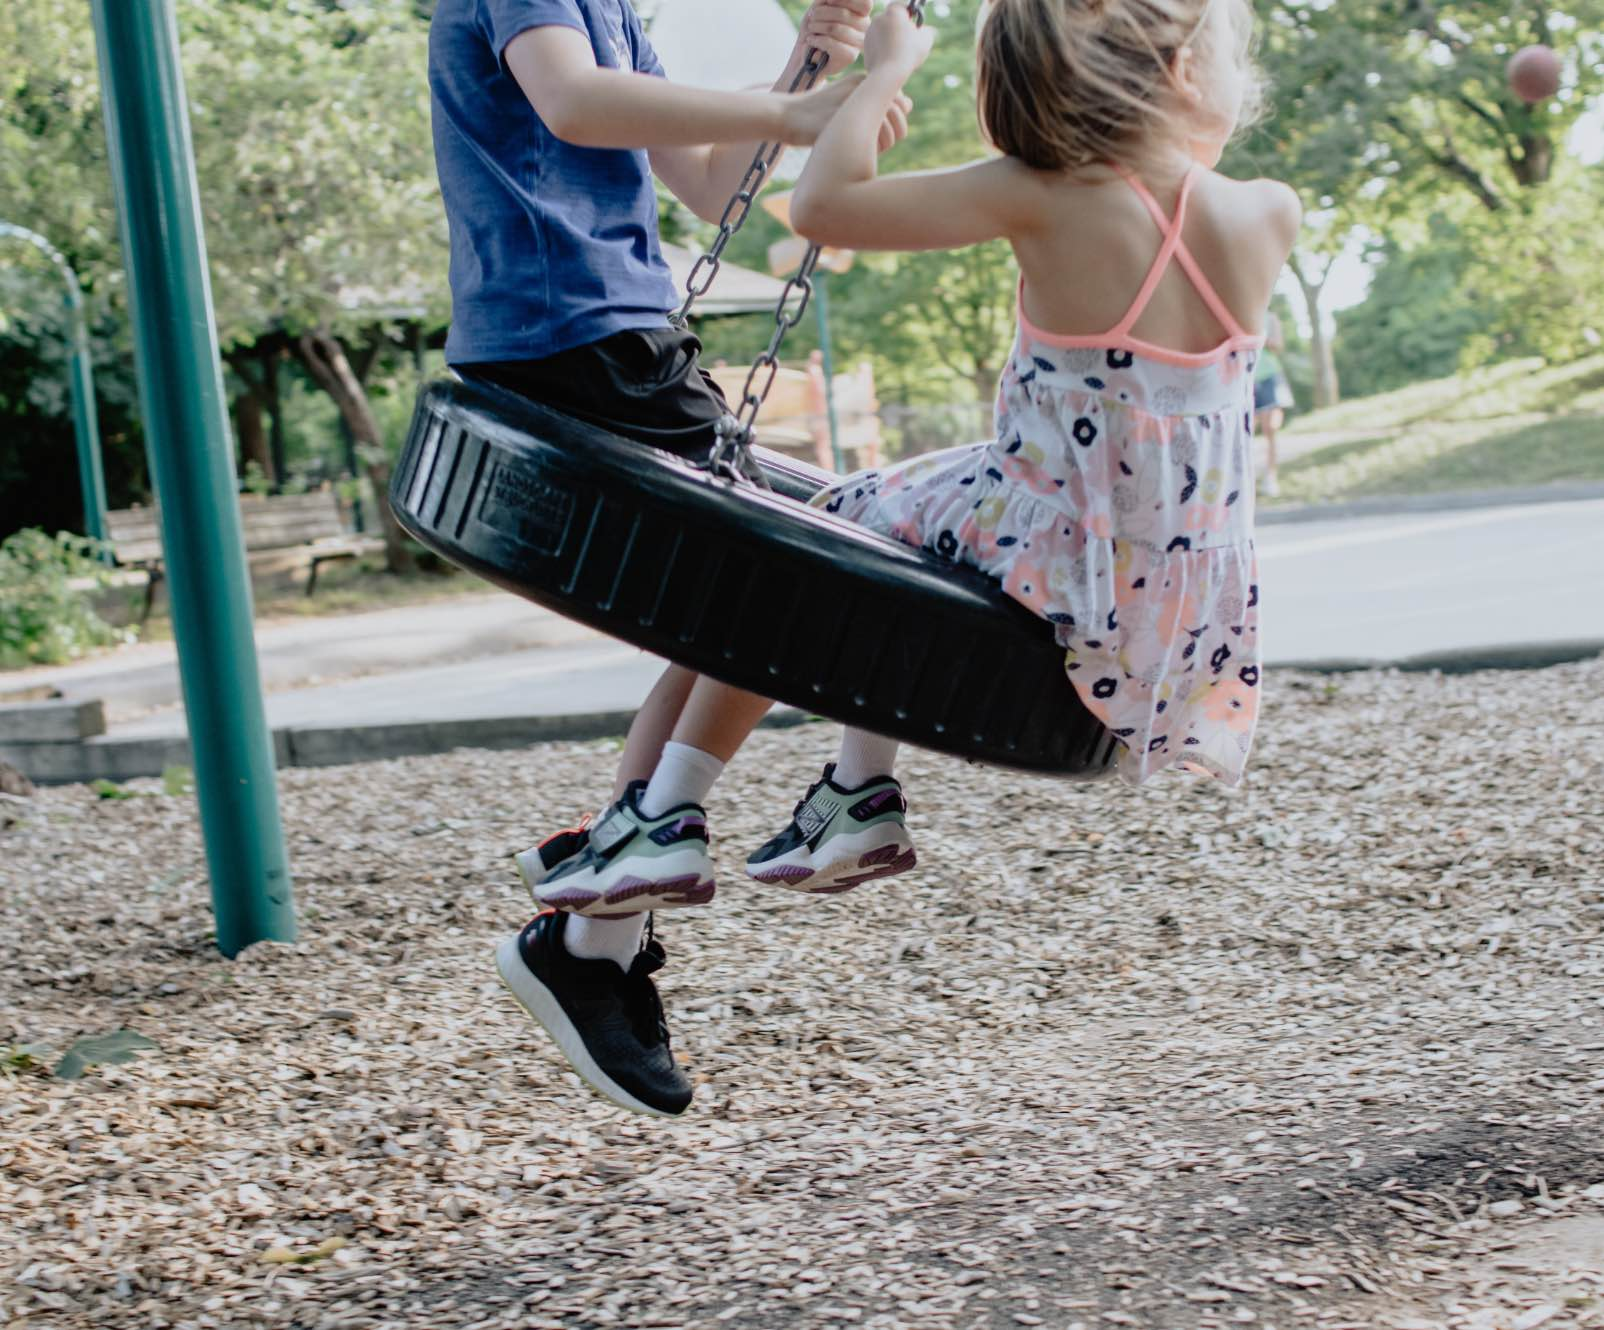 Photo of two children sitting on a tire swing